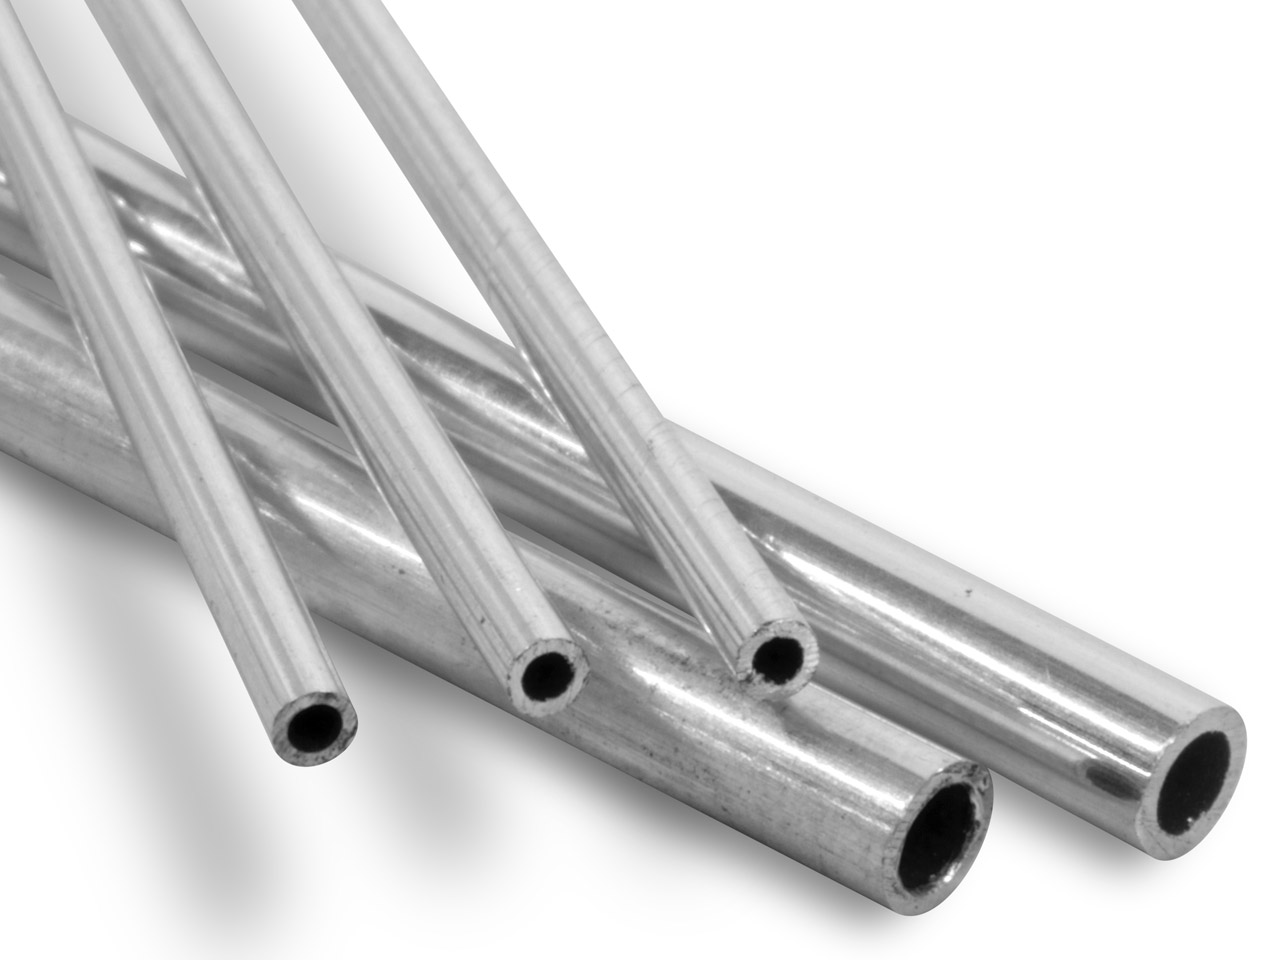 Sterling Silver Tube, Ref 13,       Outside Diameter 1.4mm,             Inside Diameter 0.90mm, 0.25mm Wall Thickness